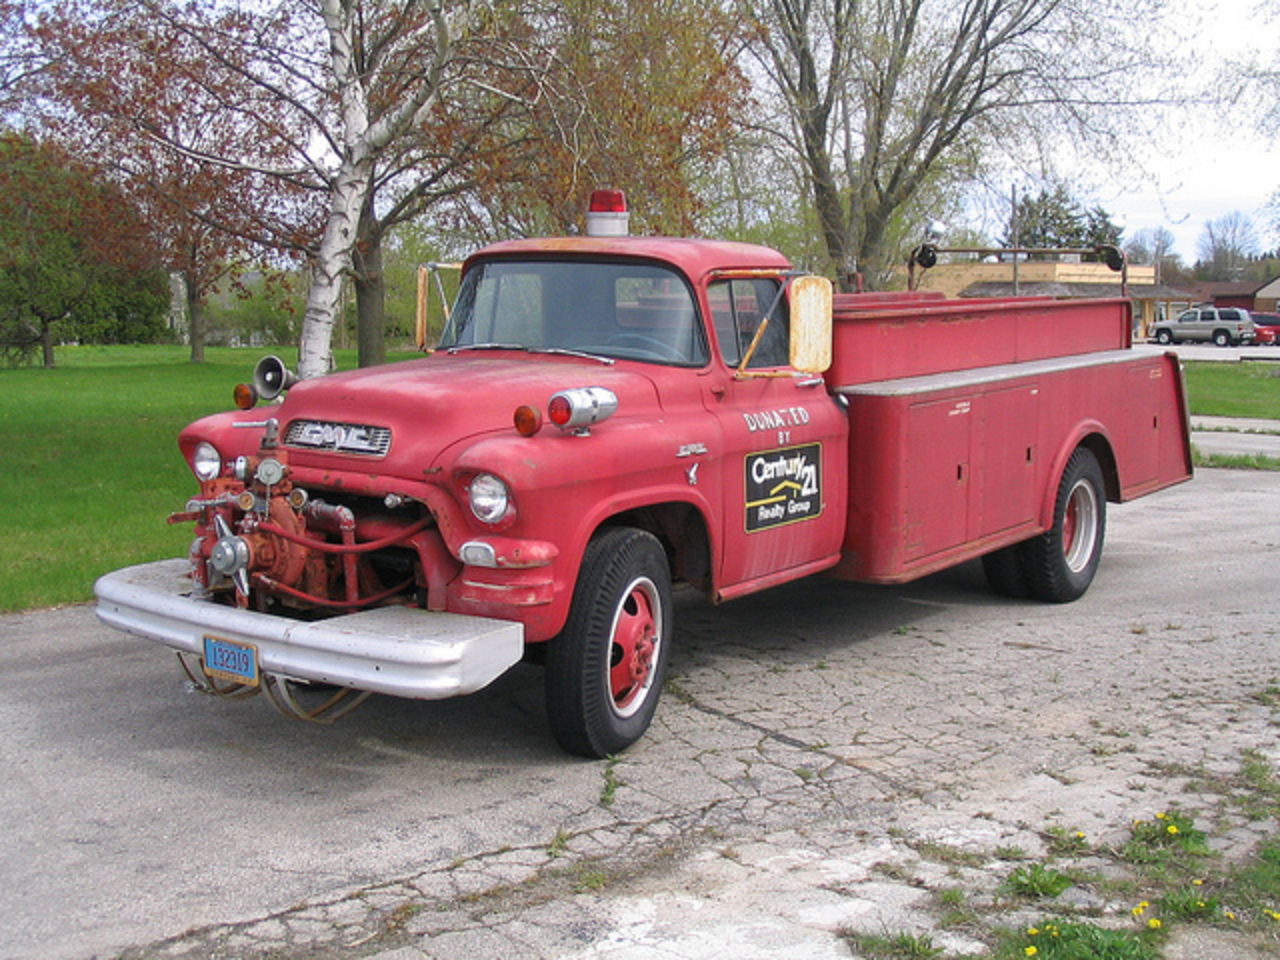 1955 GMC fire truck | Flickr - Photo Sharing!